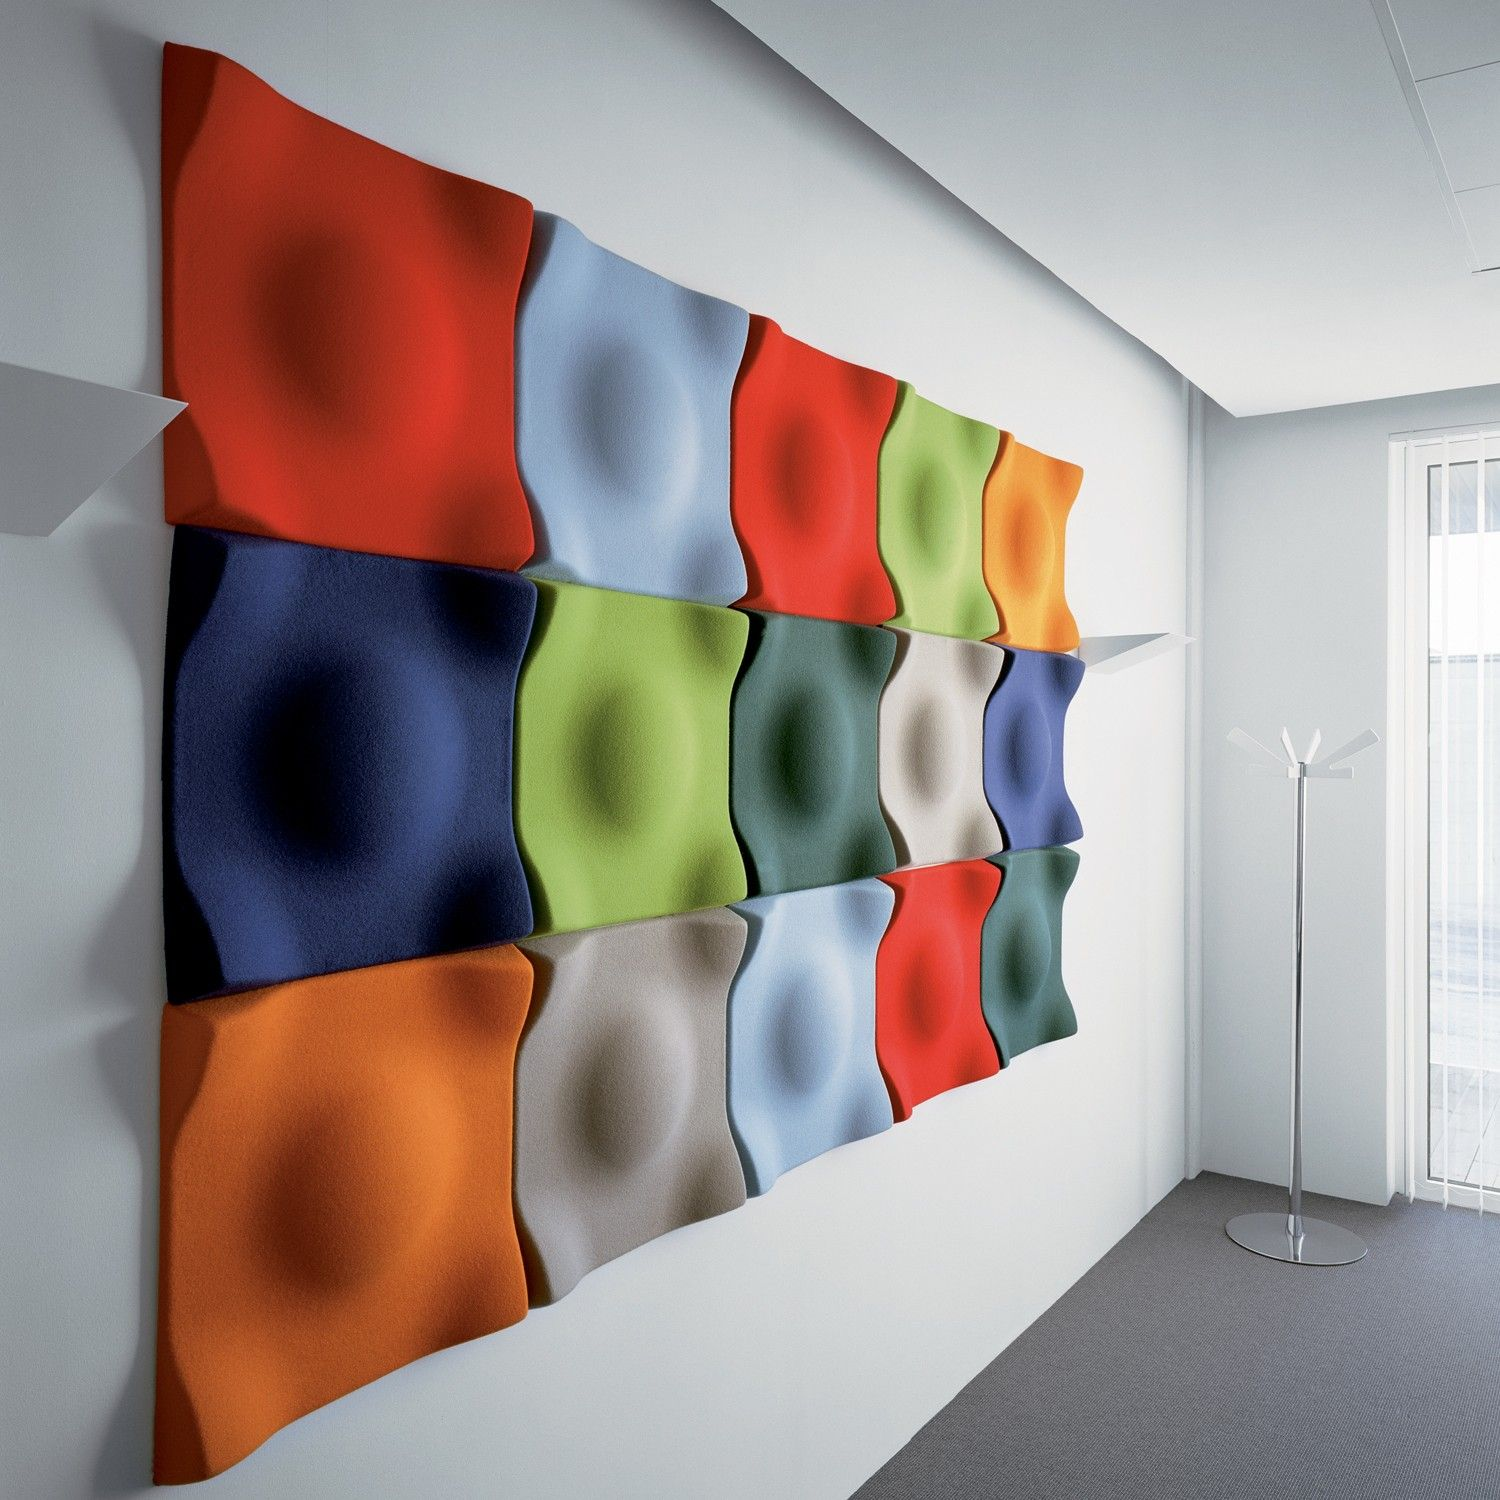 Swell Acoustic Wall Panels Concept Not This Actual Color Pallet Pantones